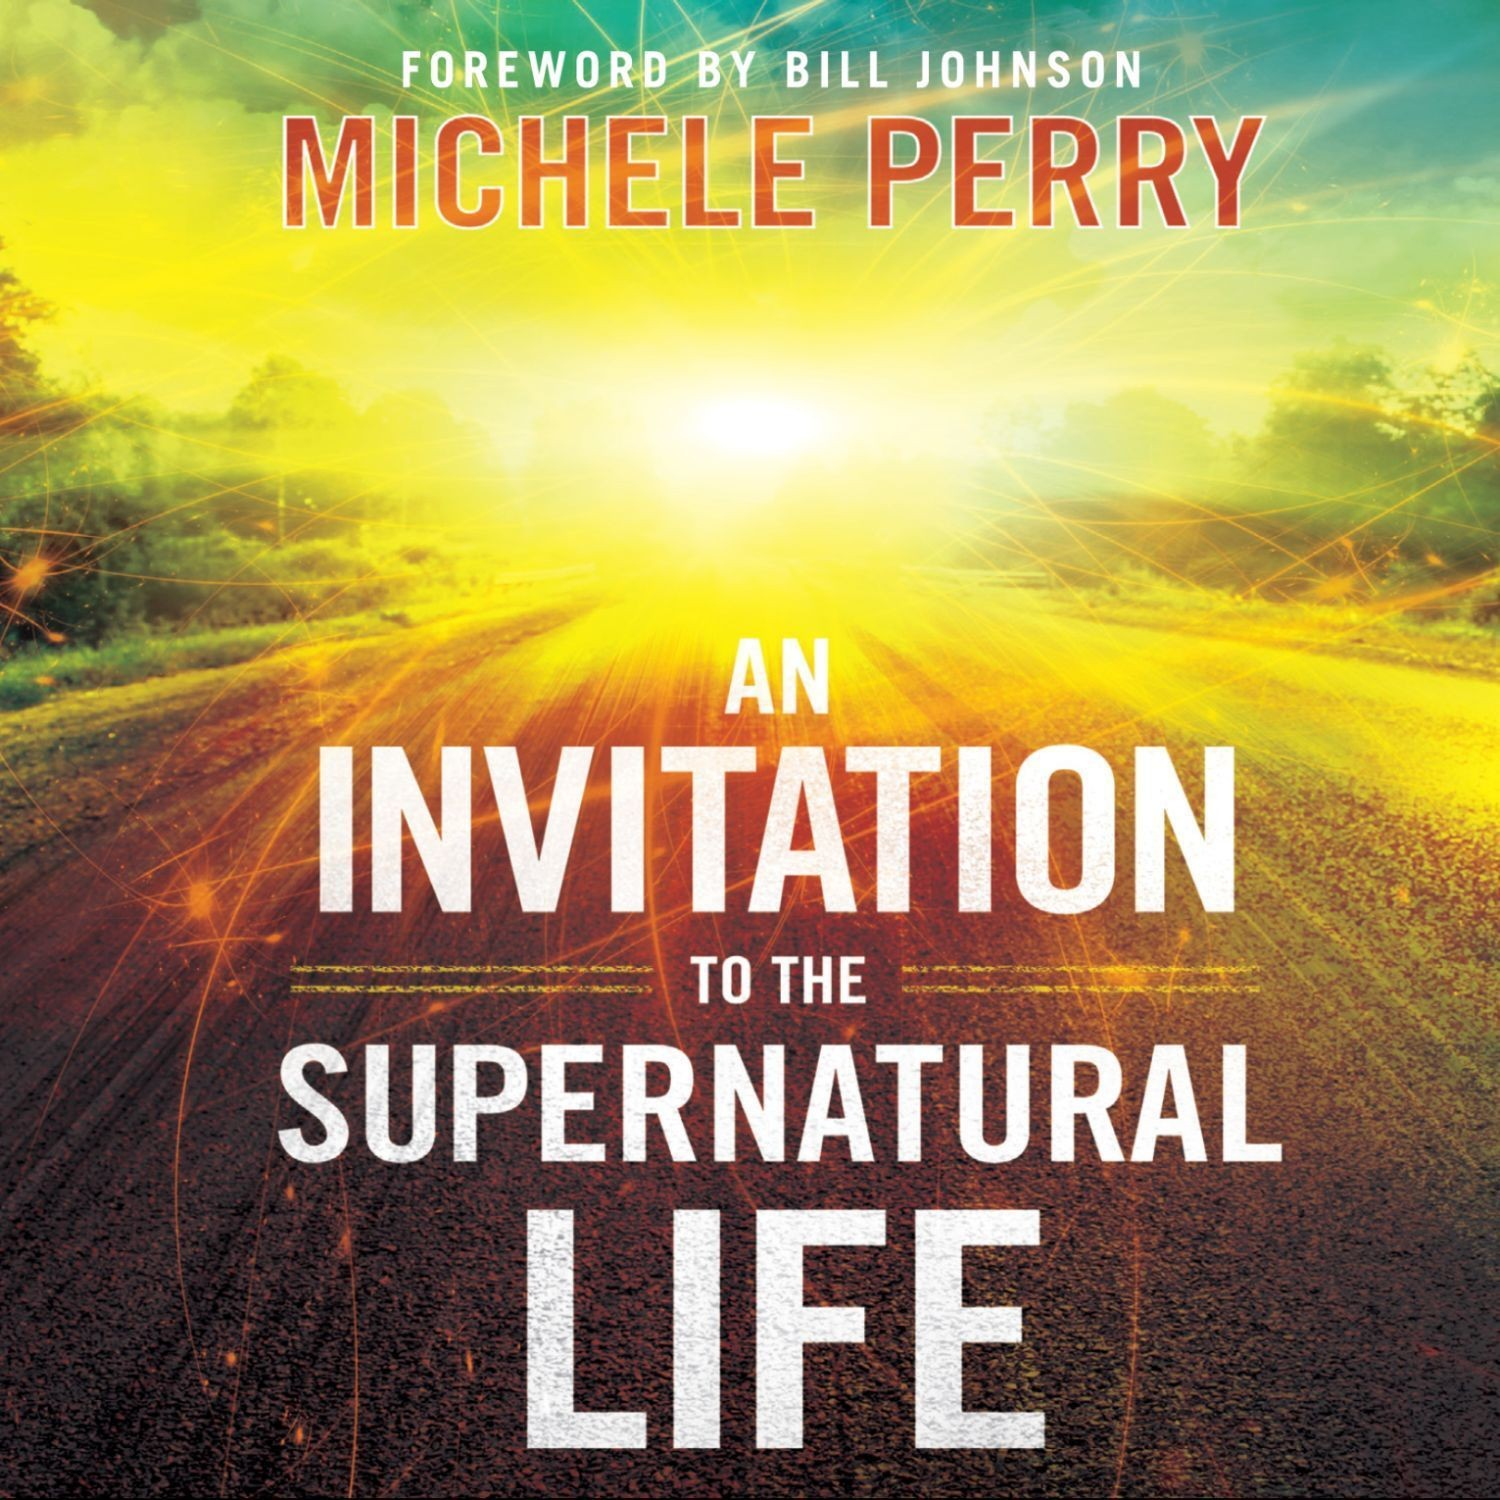 Printable An Invitation to the Supernatural Life Audiobook Cover Art